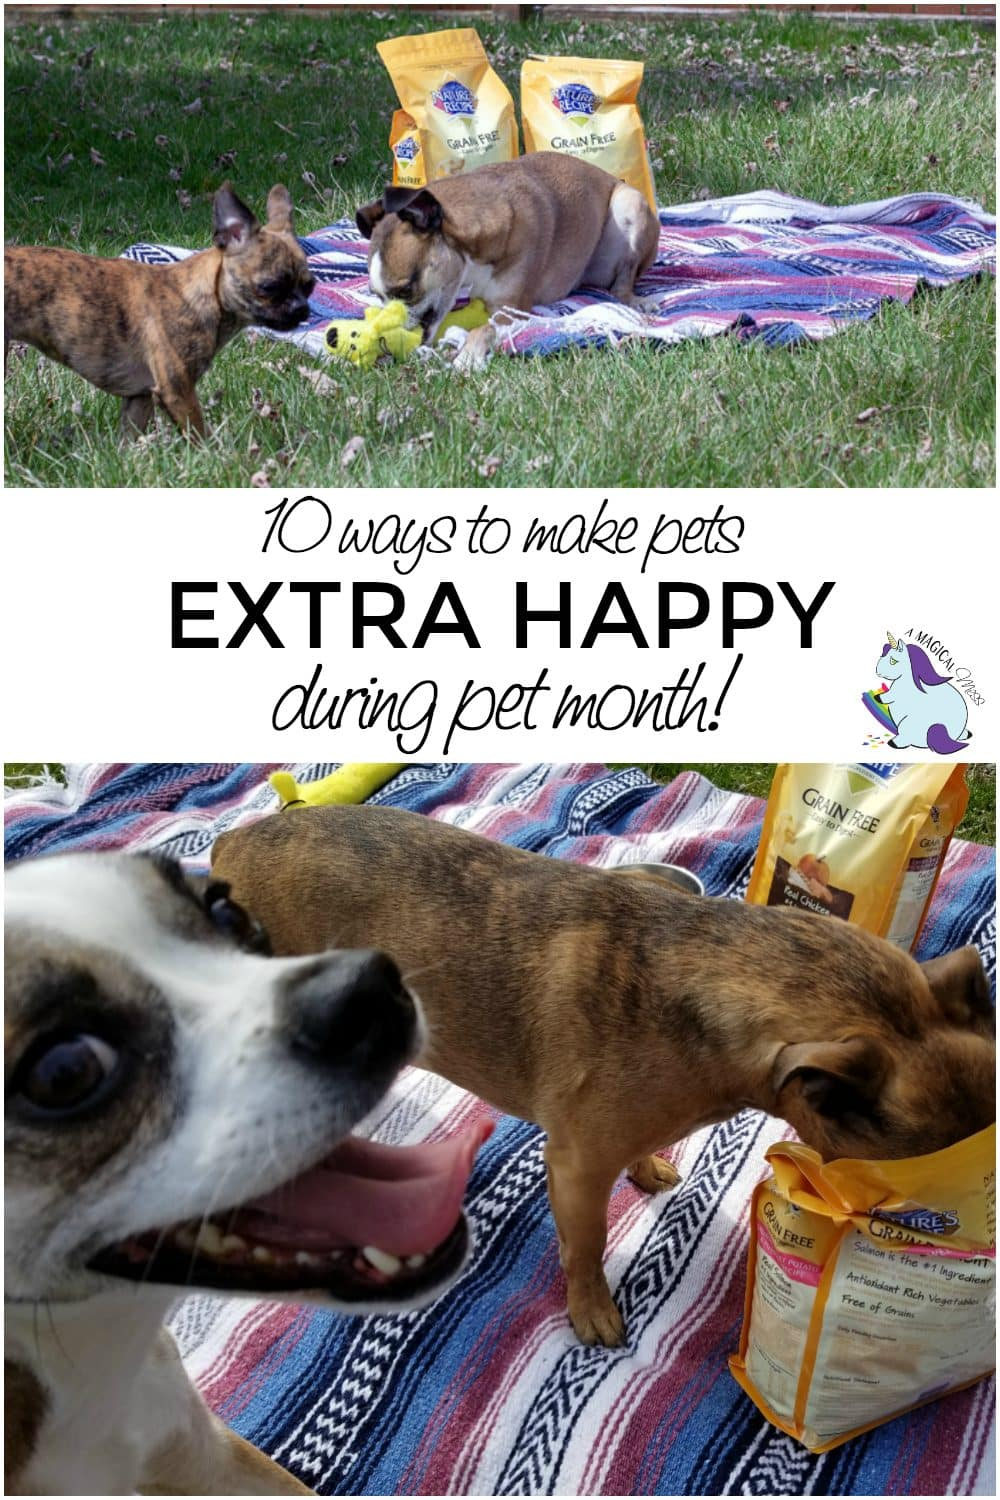 10 Ways to Make Dogs Happy During Pet Month